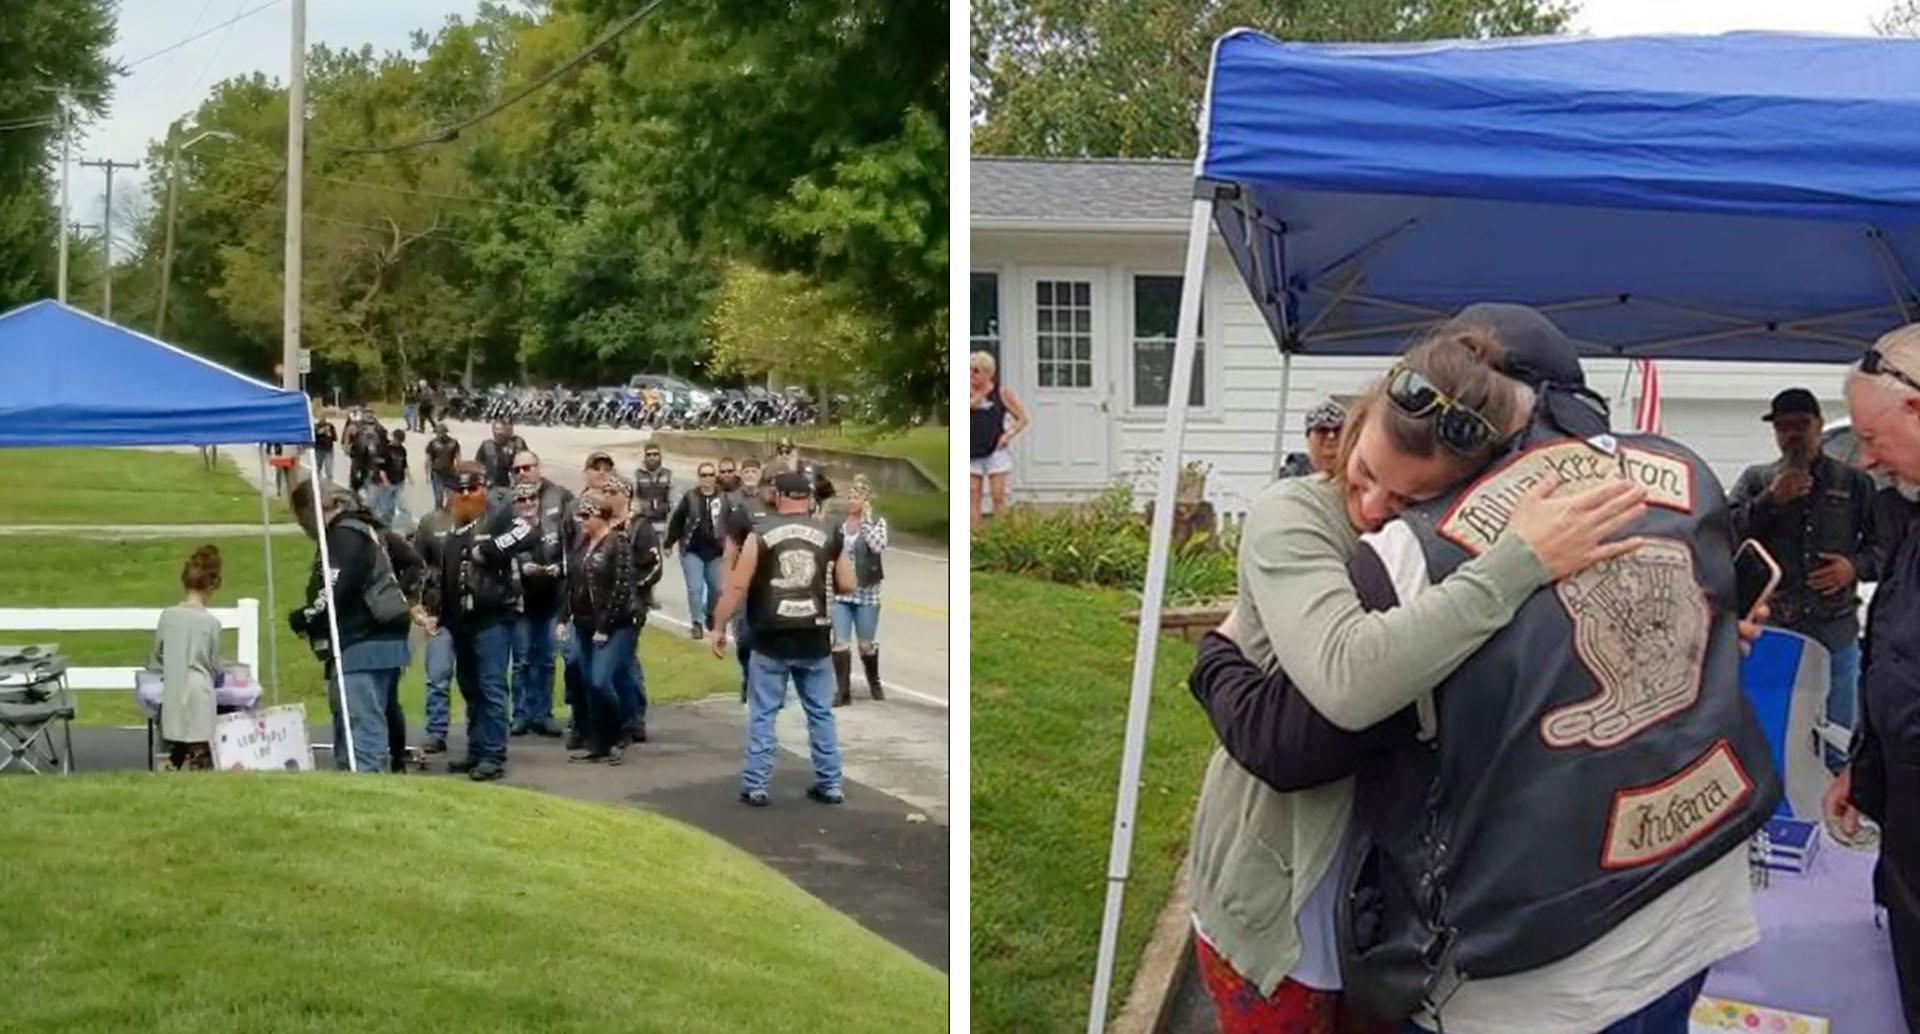 Heartwarming story of why bikers stopped at little girl's lemonade stand